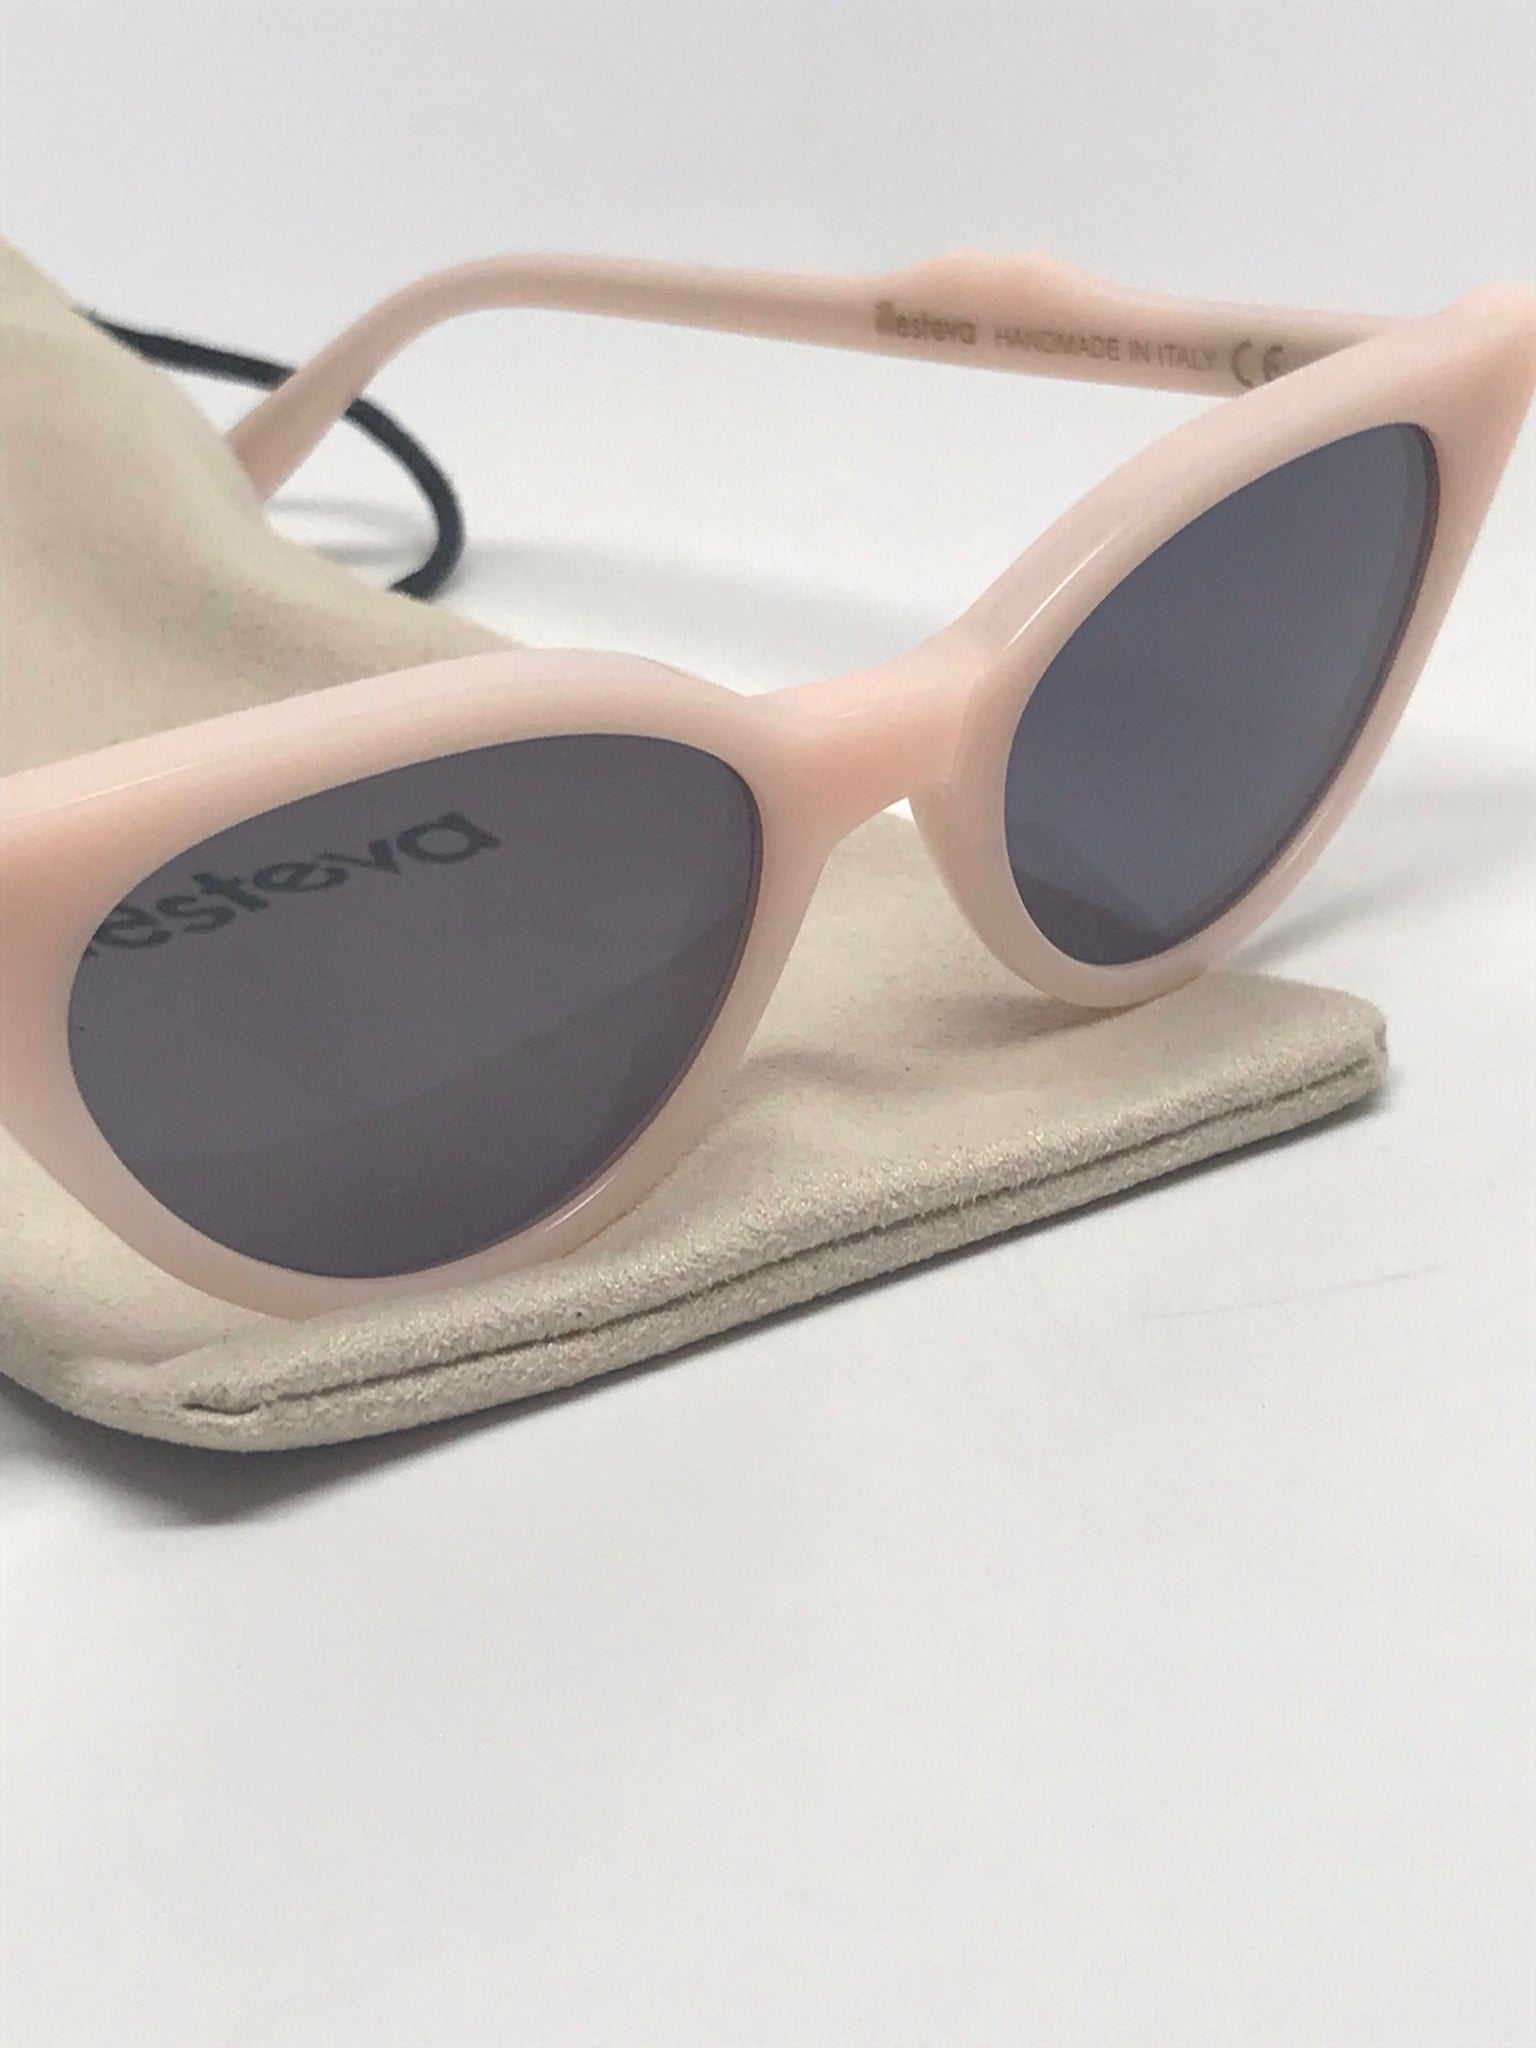 ILLESTEVA ISABELLA SUNNIES IN COTTON CANDY WITH GRAY FLAT LENSES